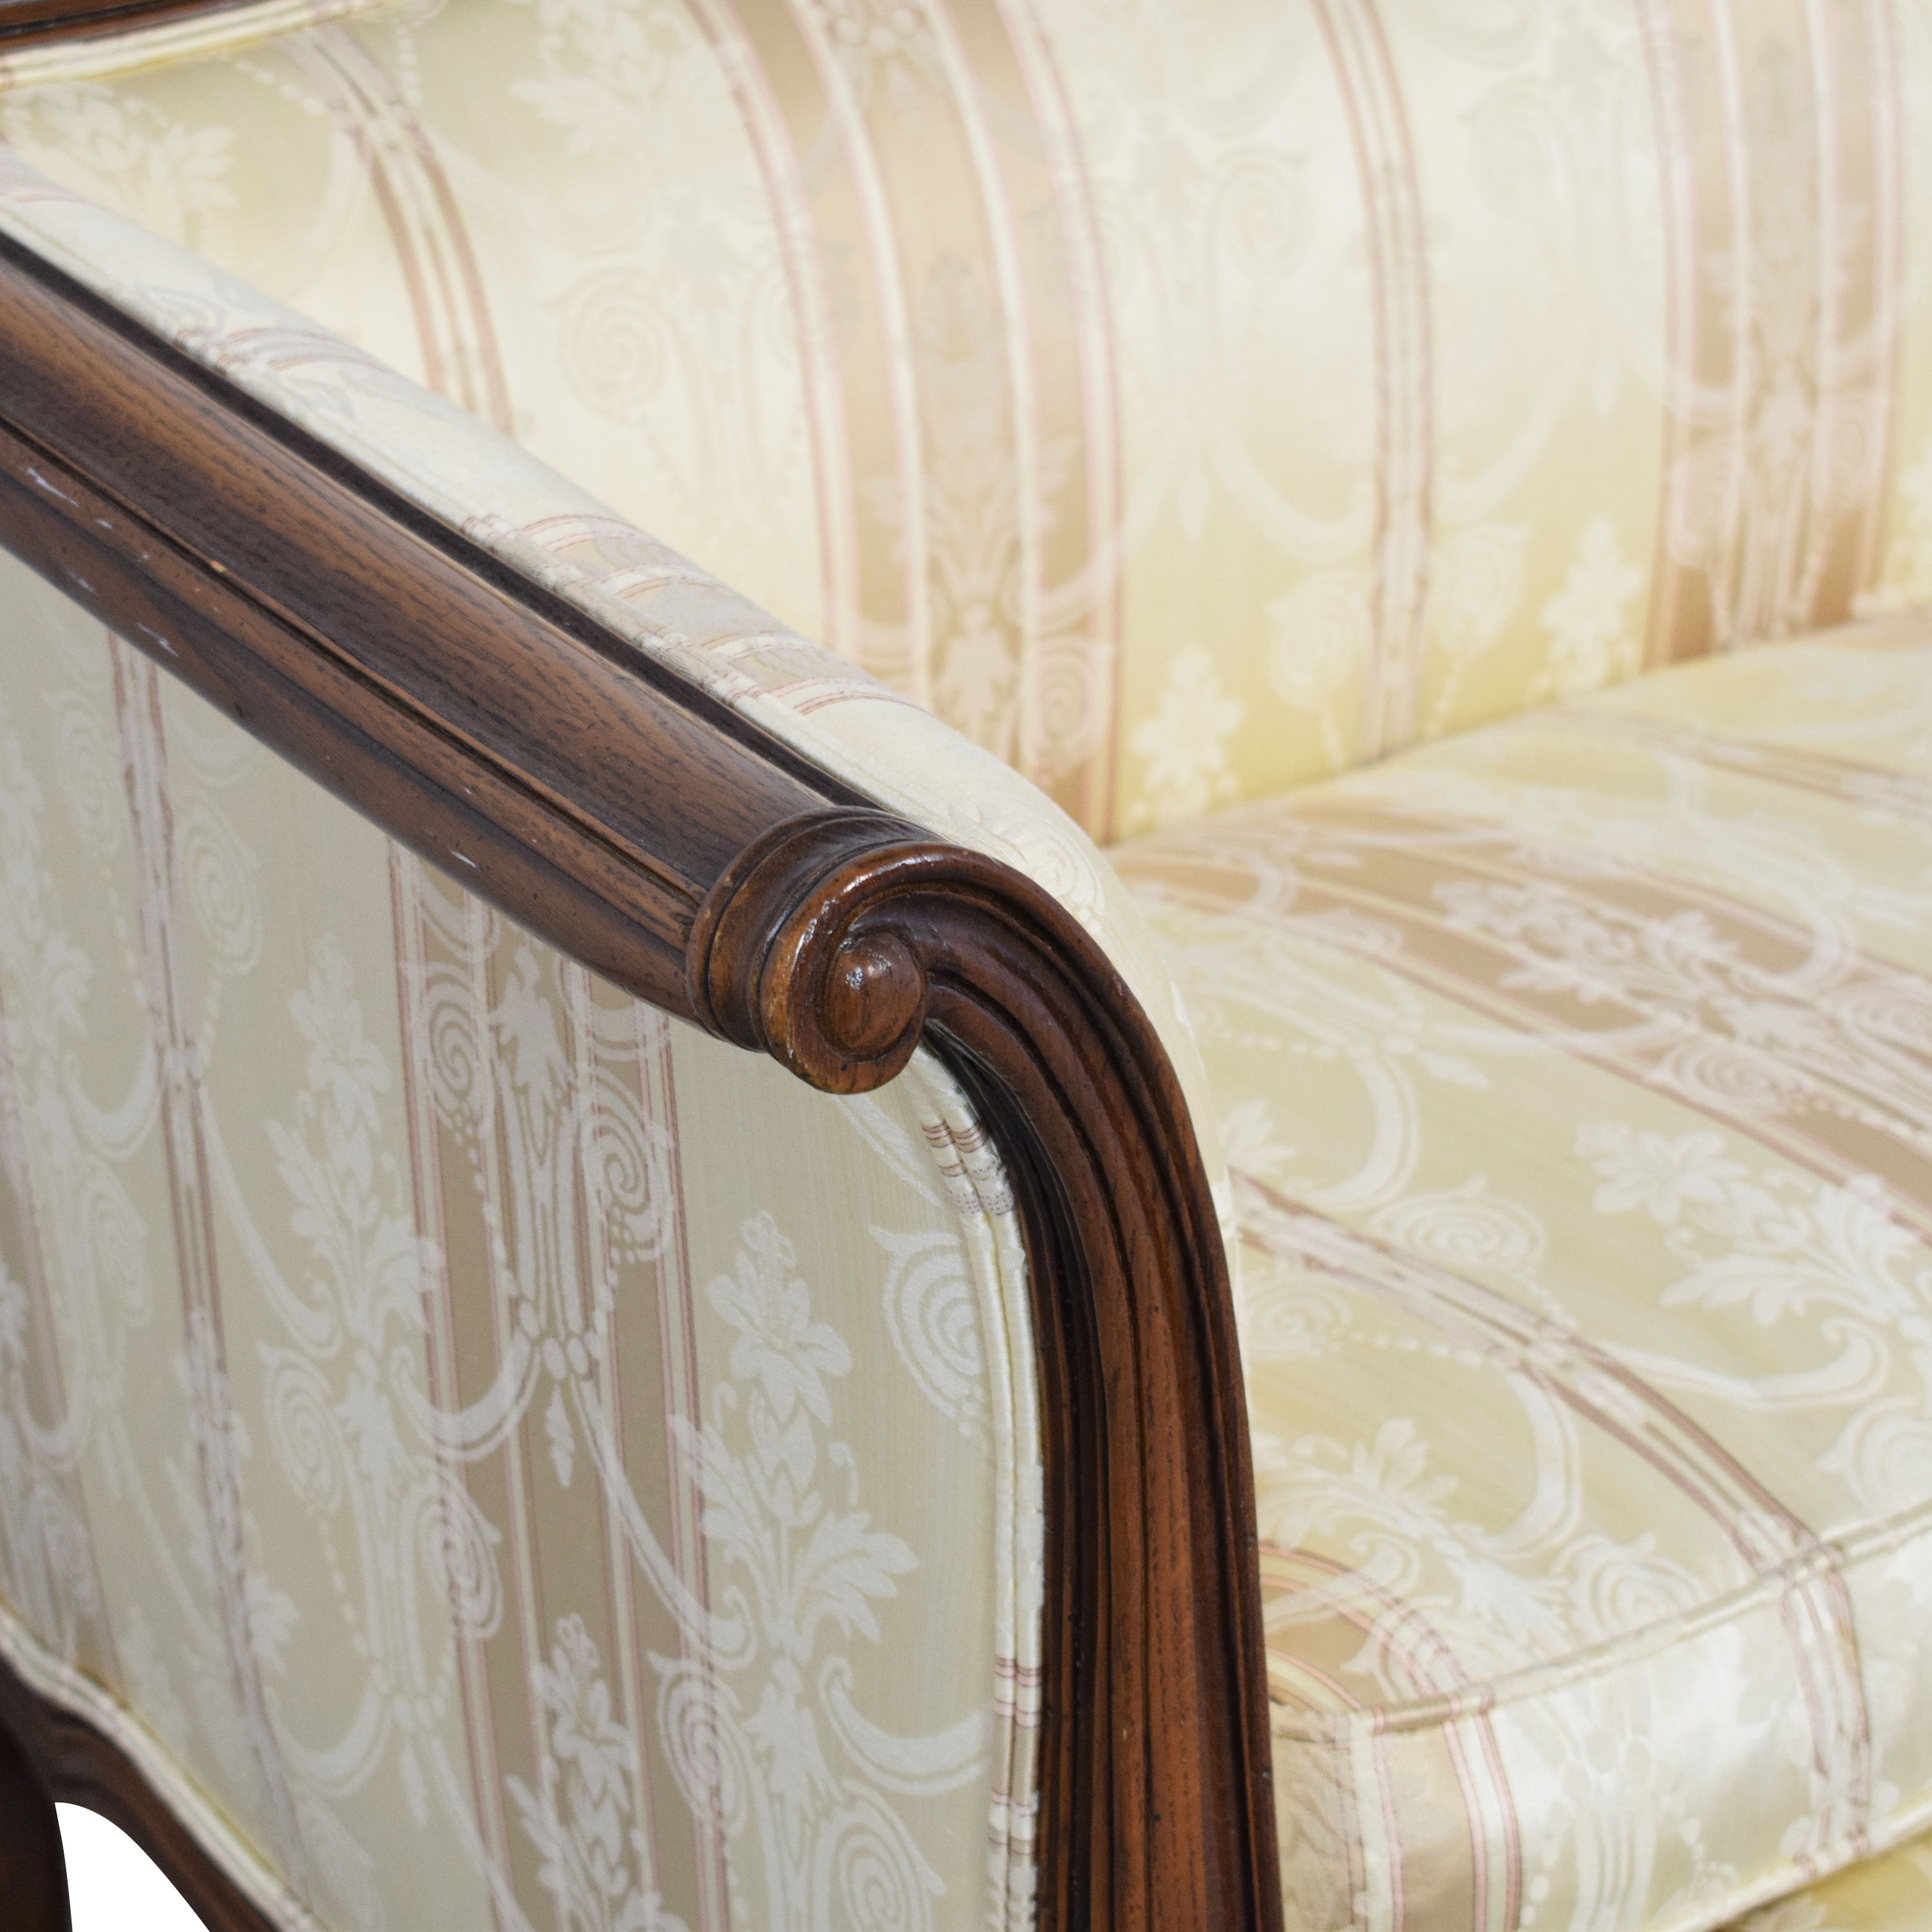 Century Furniture Century Furniture Sofa with Carved Legs and Trim